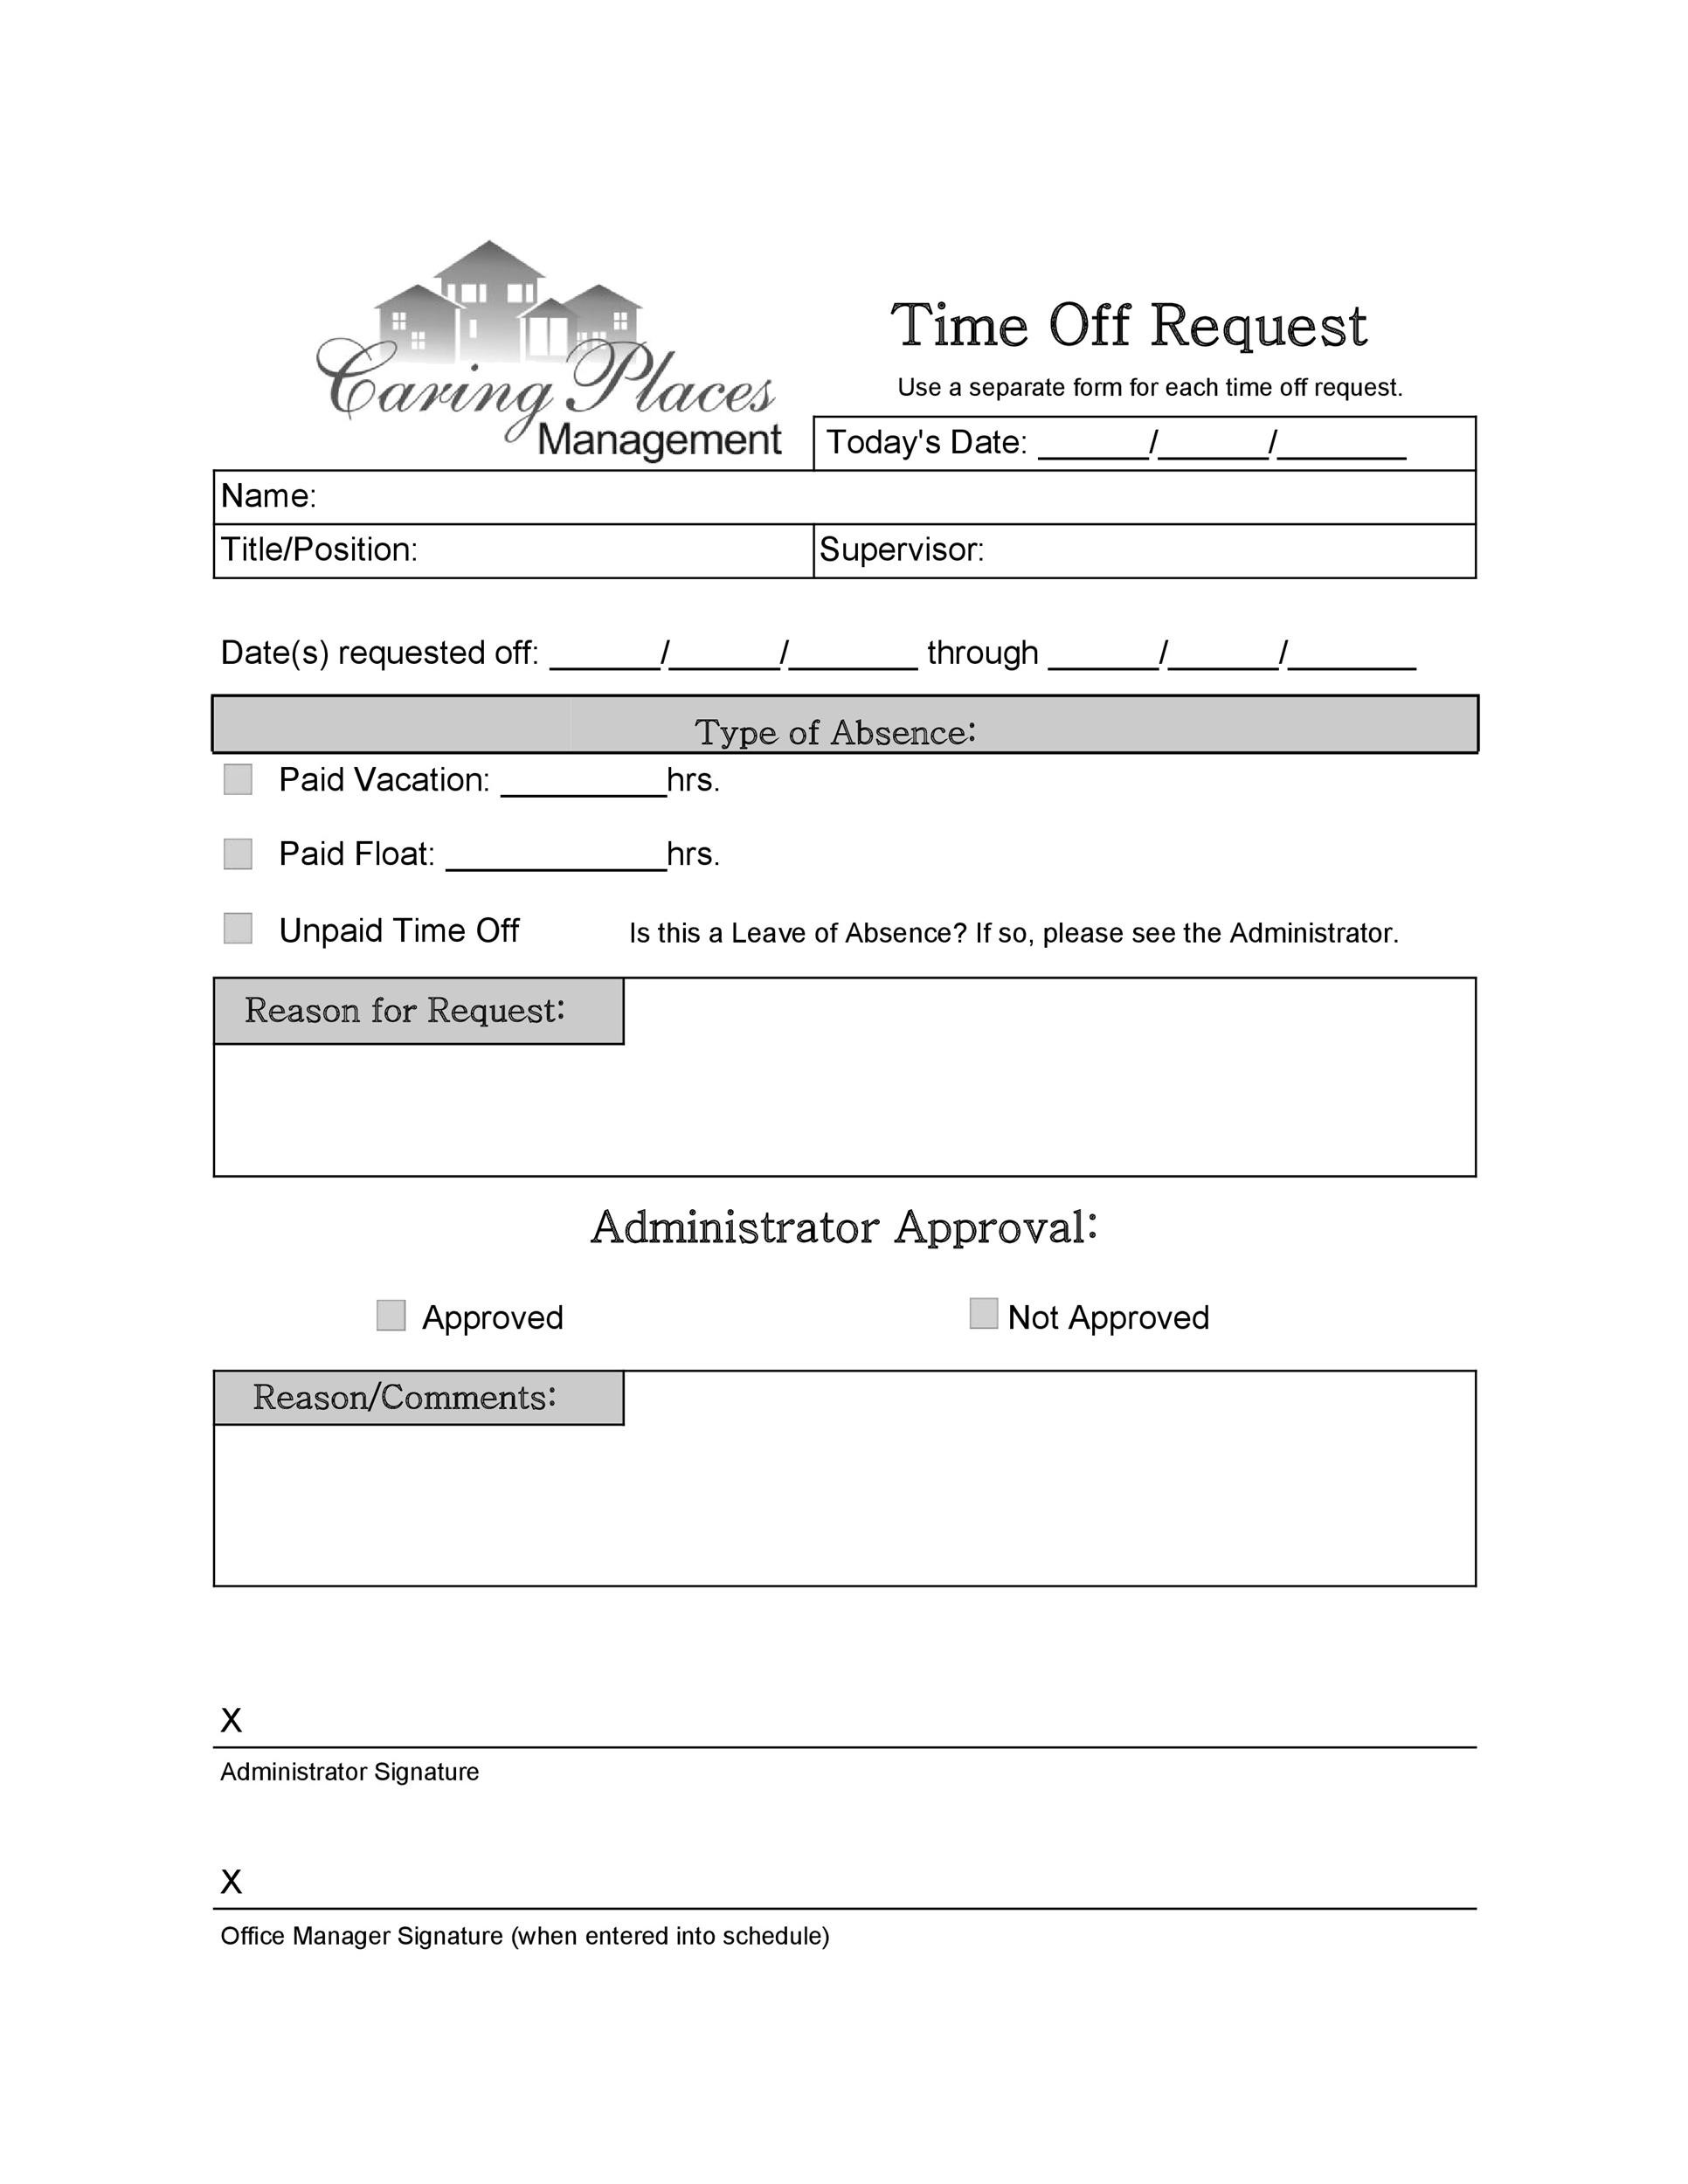 Sample Time Off Request Form   ExeforeInfo